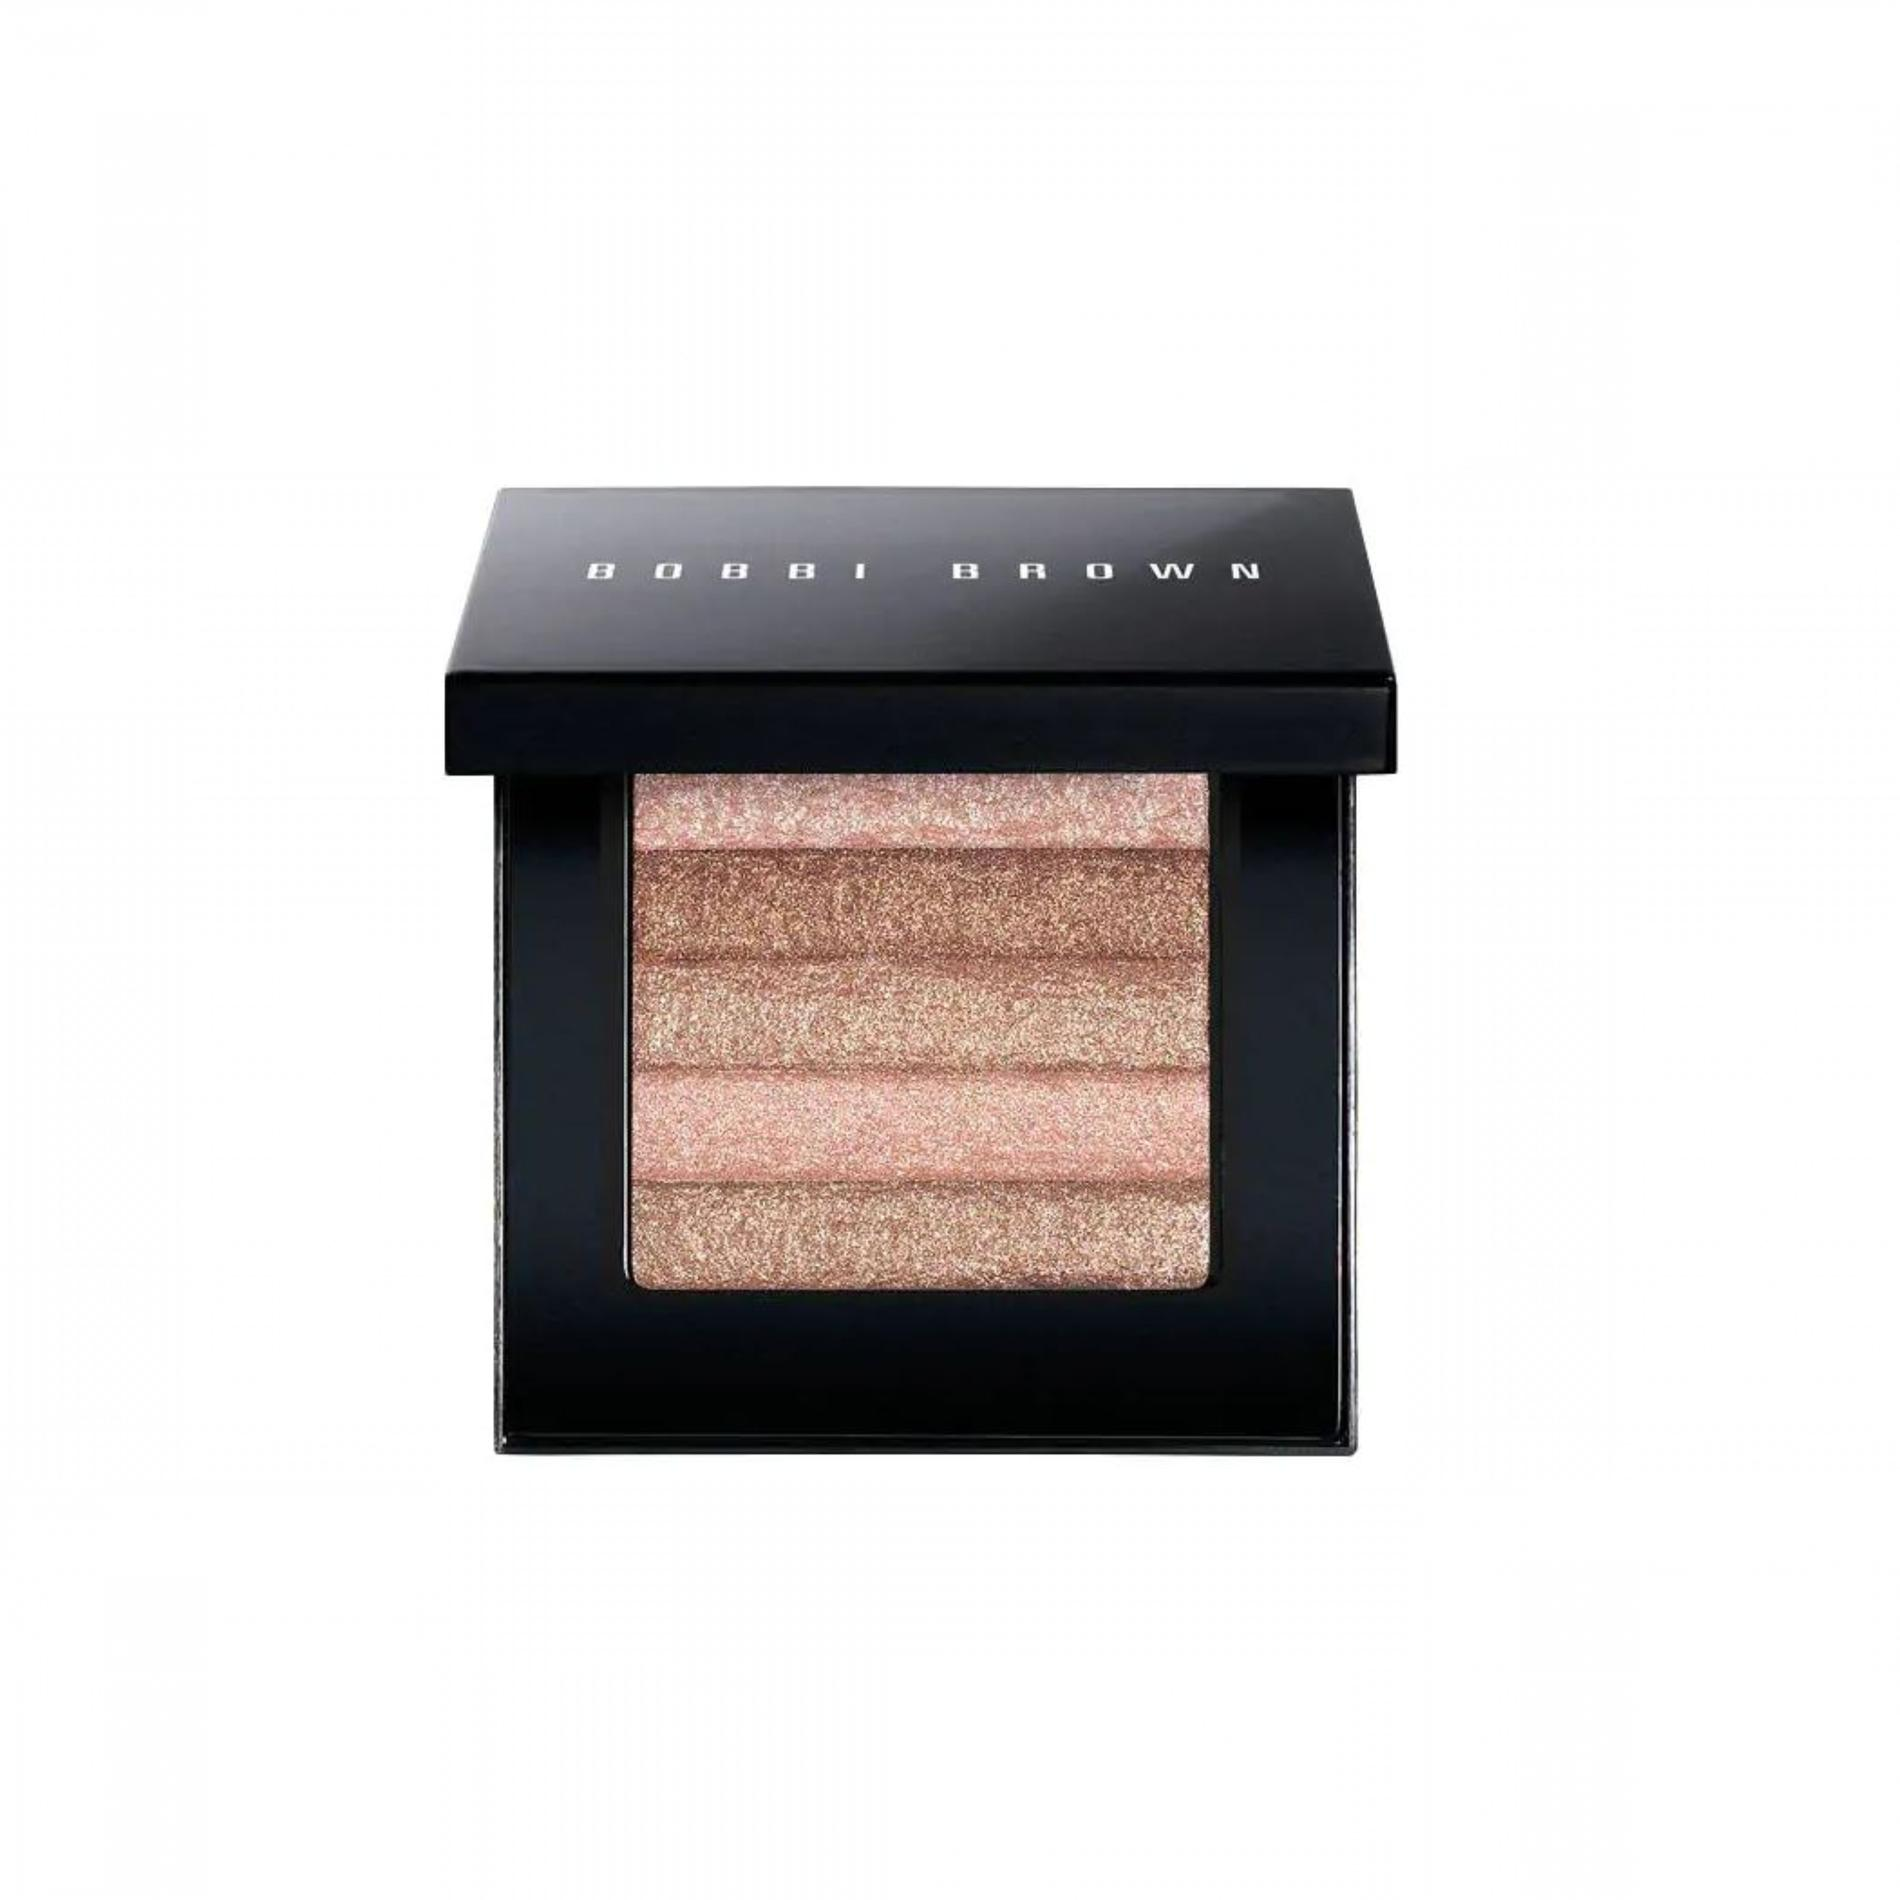 La palette bronzer Bobbi Brown.